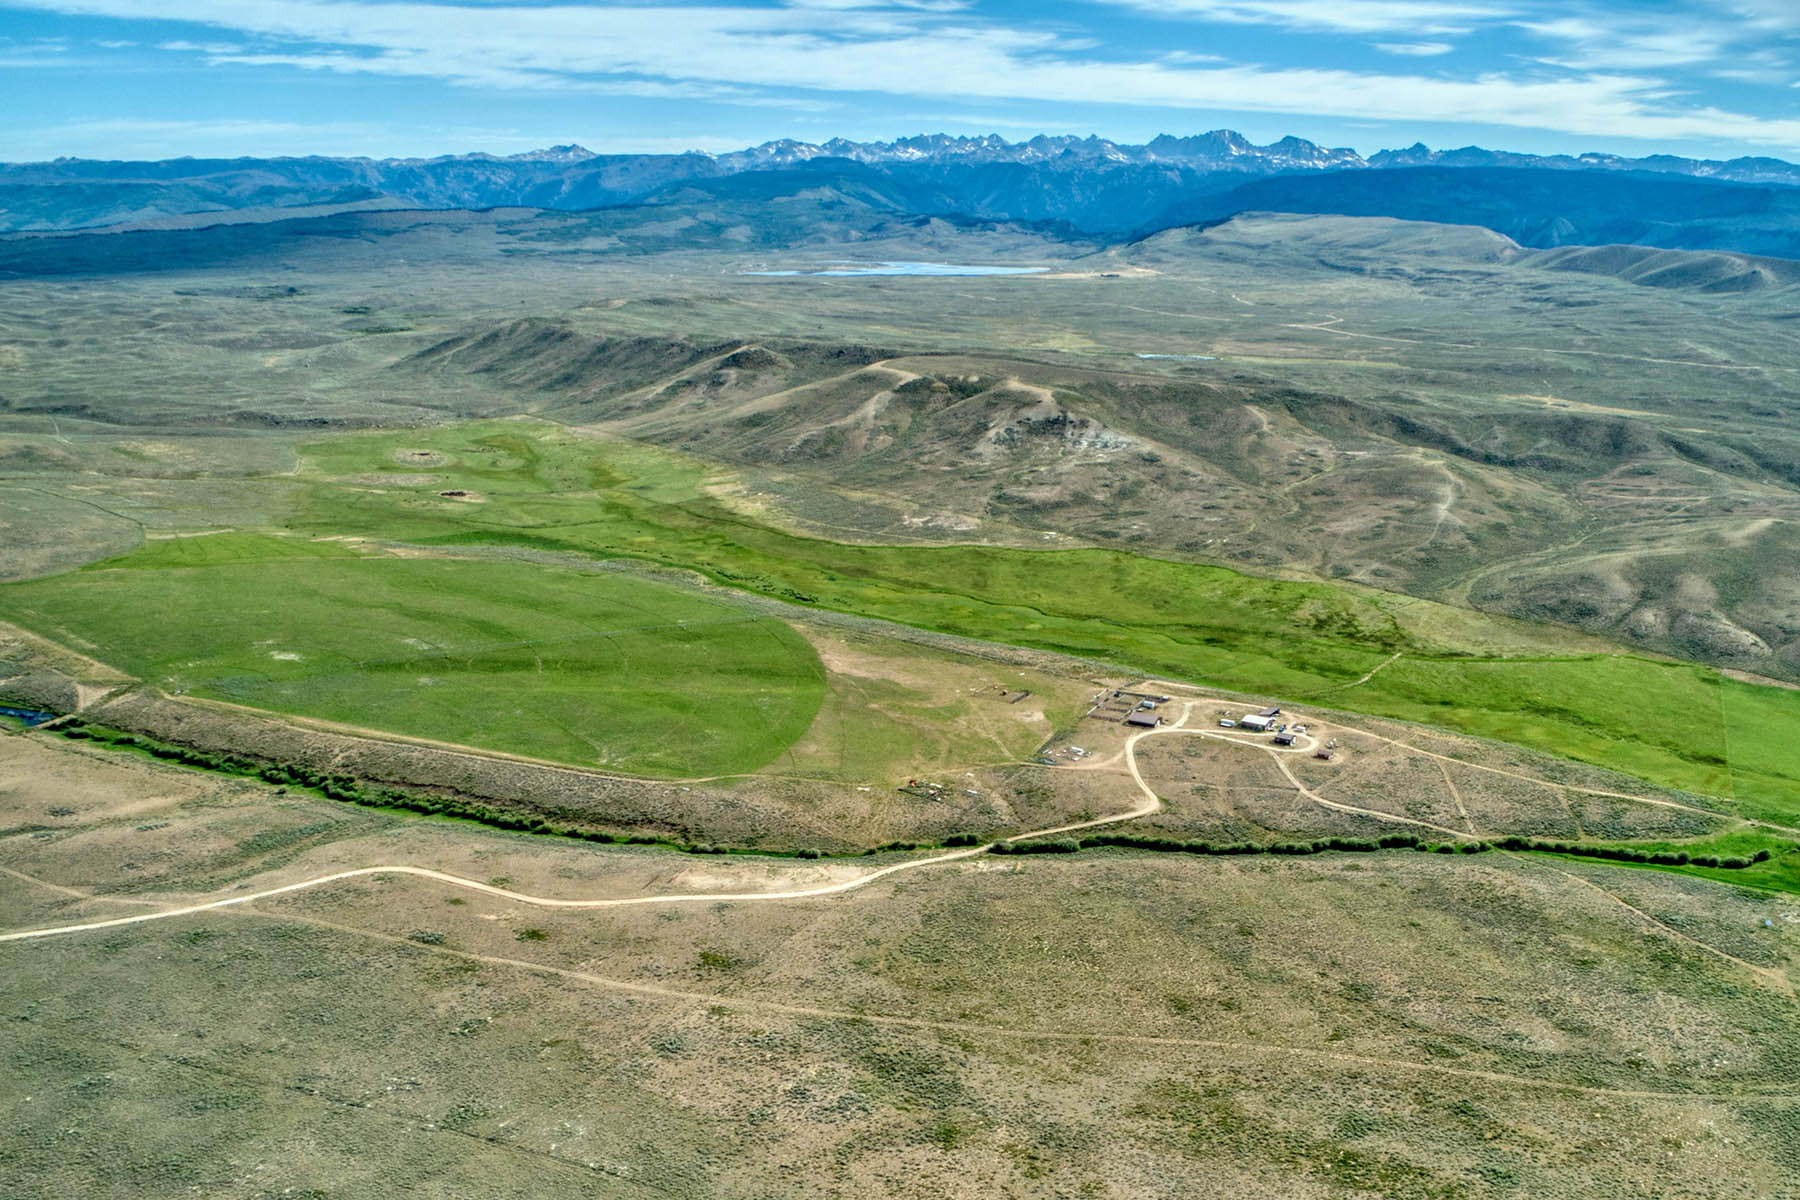 Farm / Ranch / Plantation for Sale at Barber Creek Ranch Endless Possibilities 180 Spring Gulch Road Pinedale, Wyoming 82941 United States